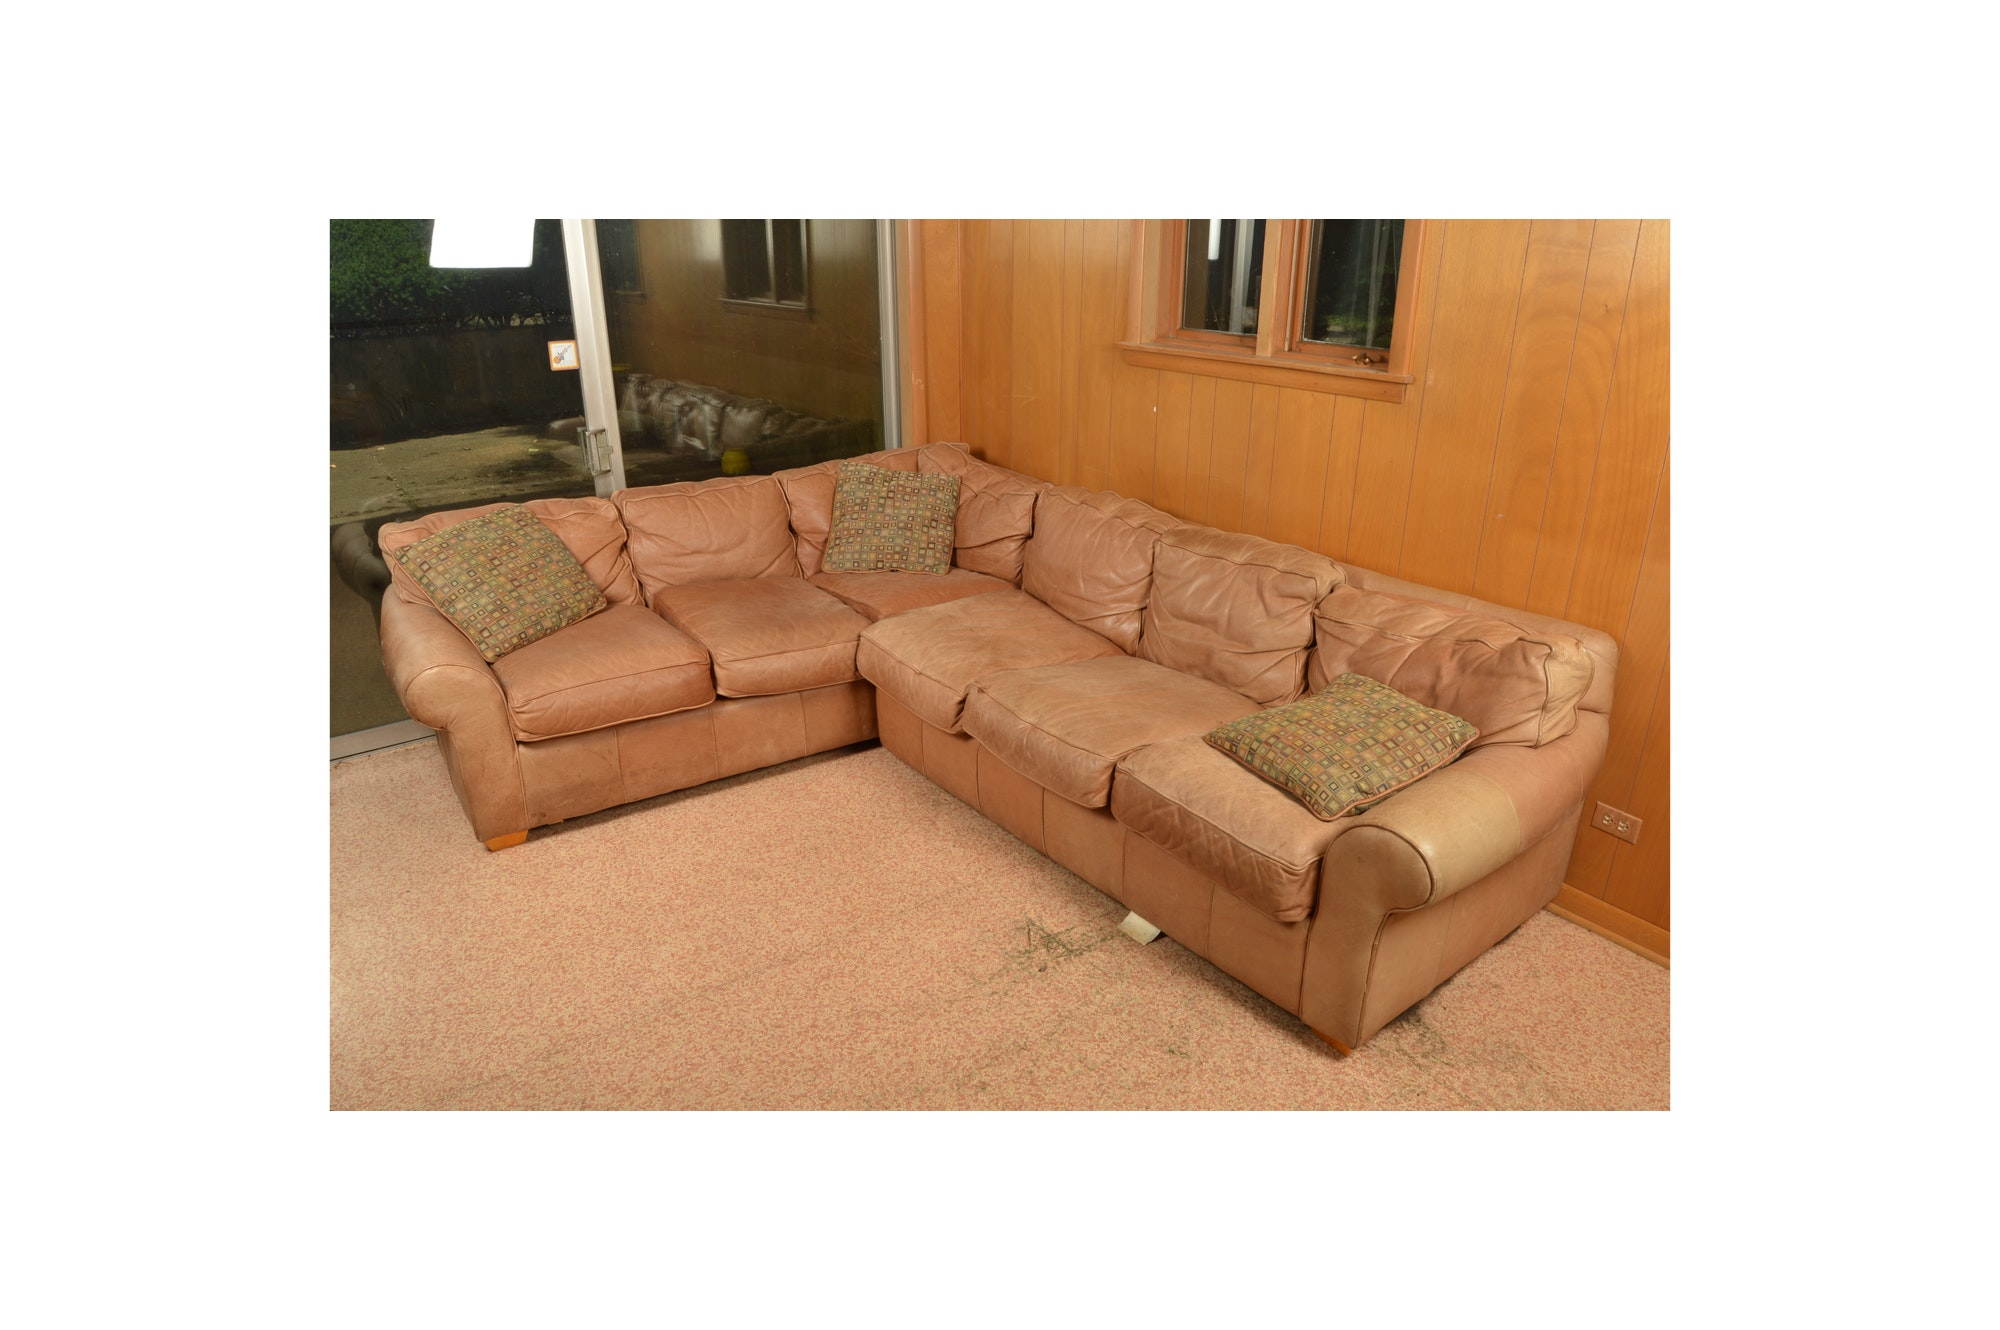 Brown Leather Sectional Sofa With Sealy Posturepedic Supreme Sleeper ...  sc 1 st  Everything But The House : sealy sectional - Sectionals, Sofas & Couches